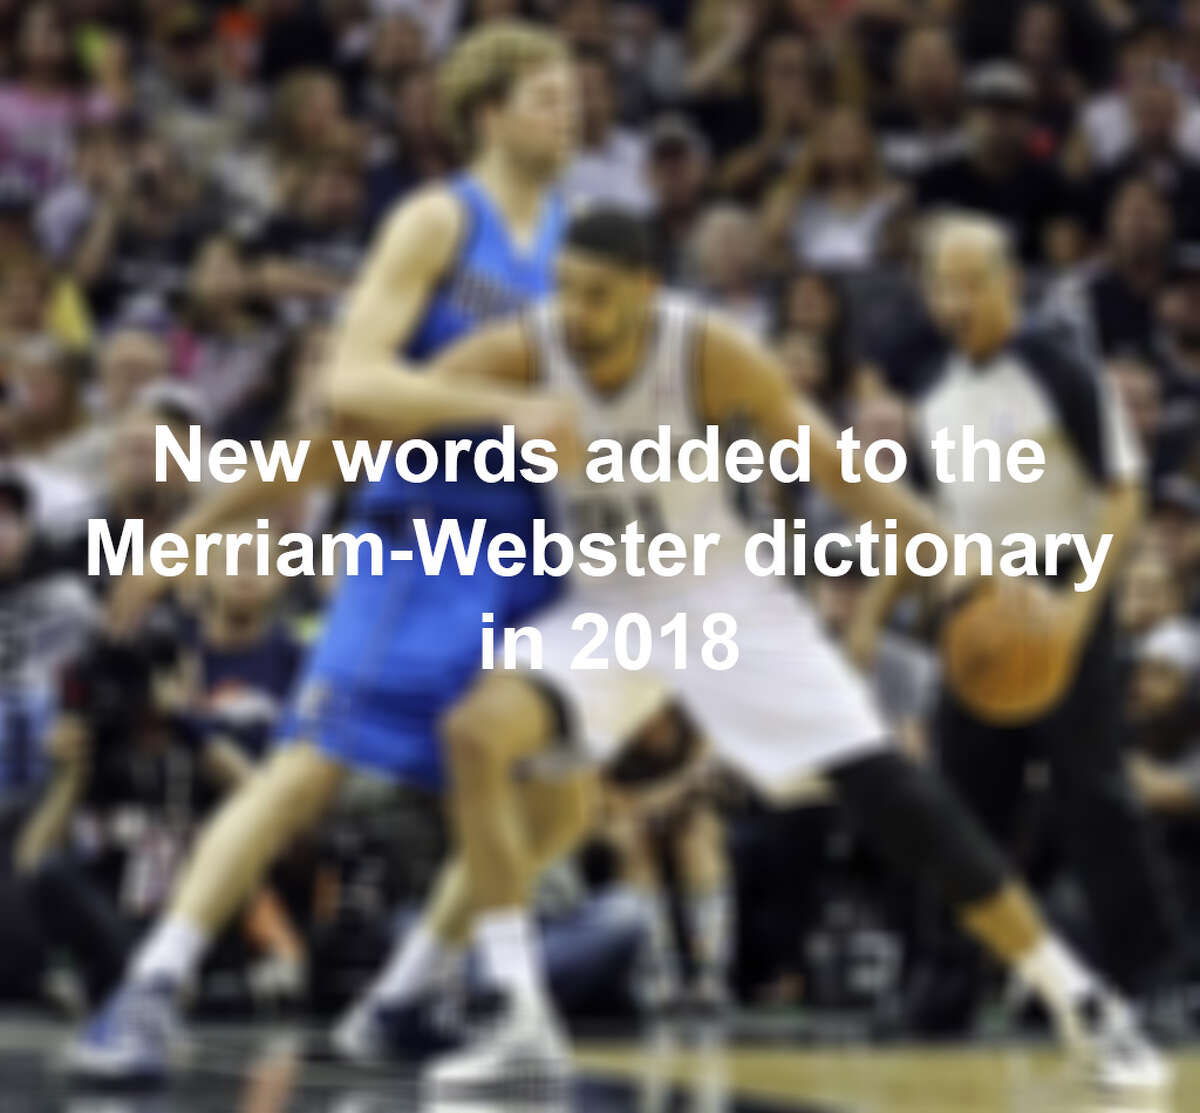 Click to see which words were added to the Merriam-Webster dictionary in 2018